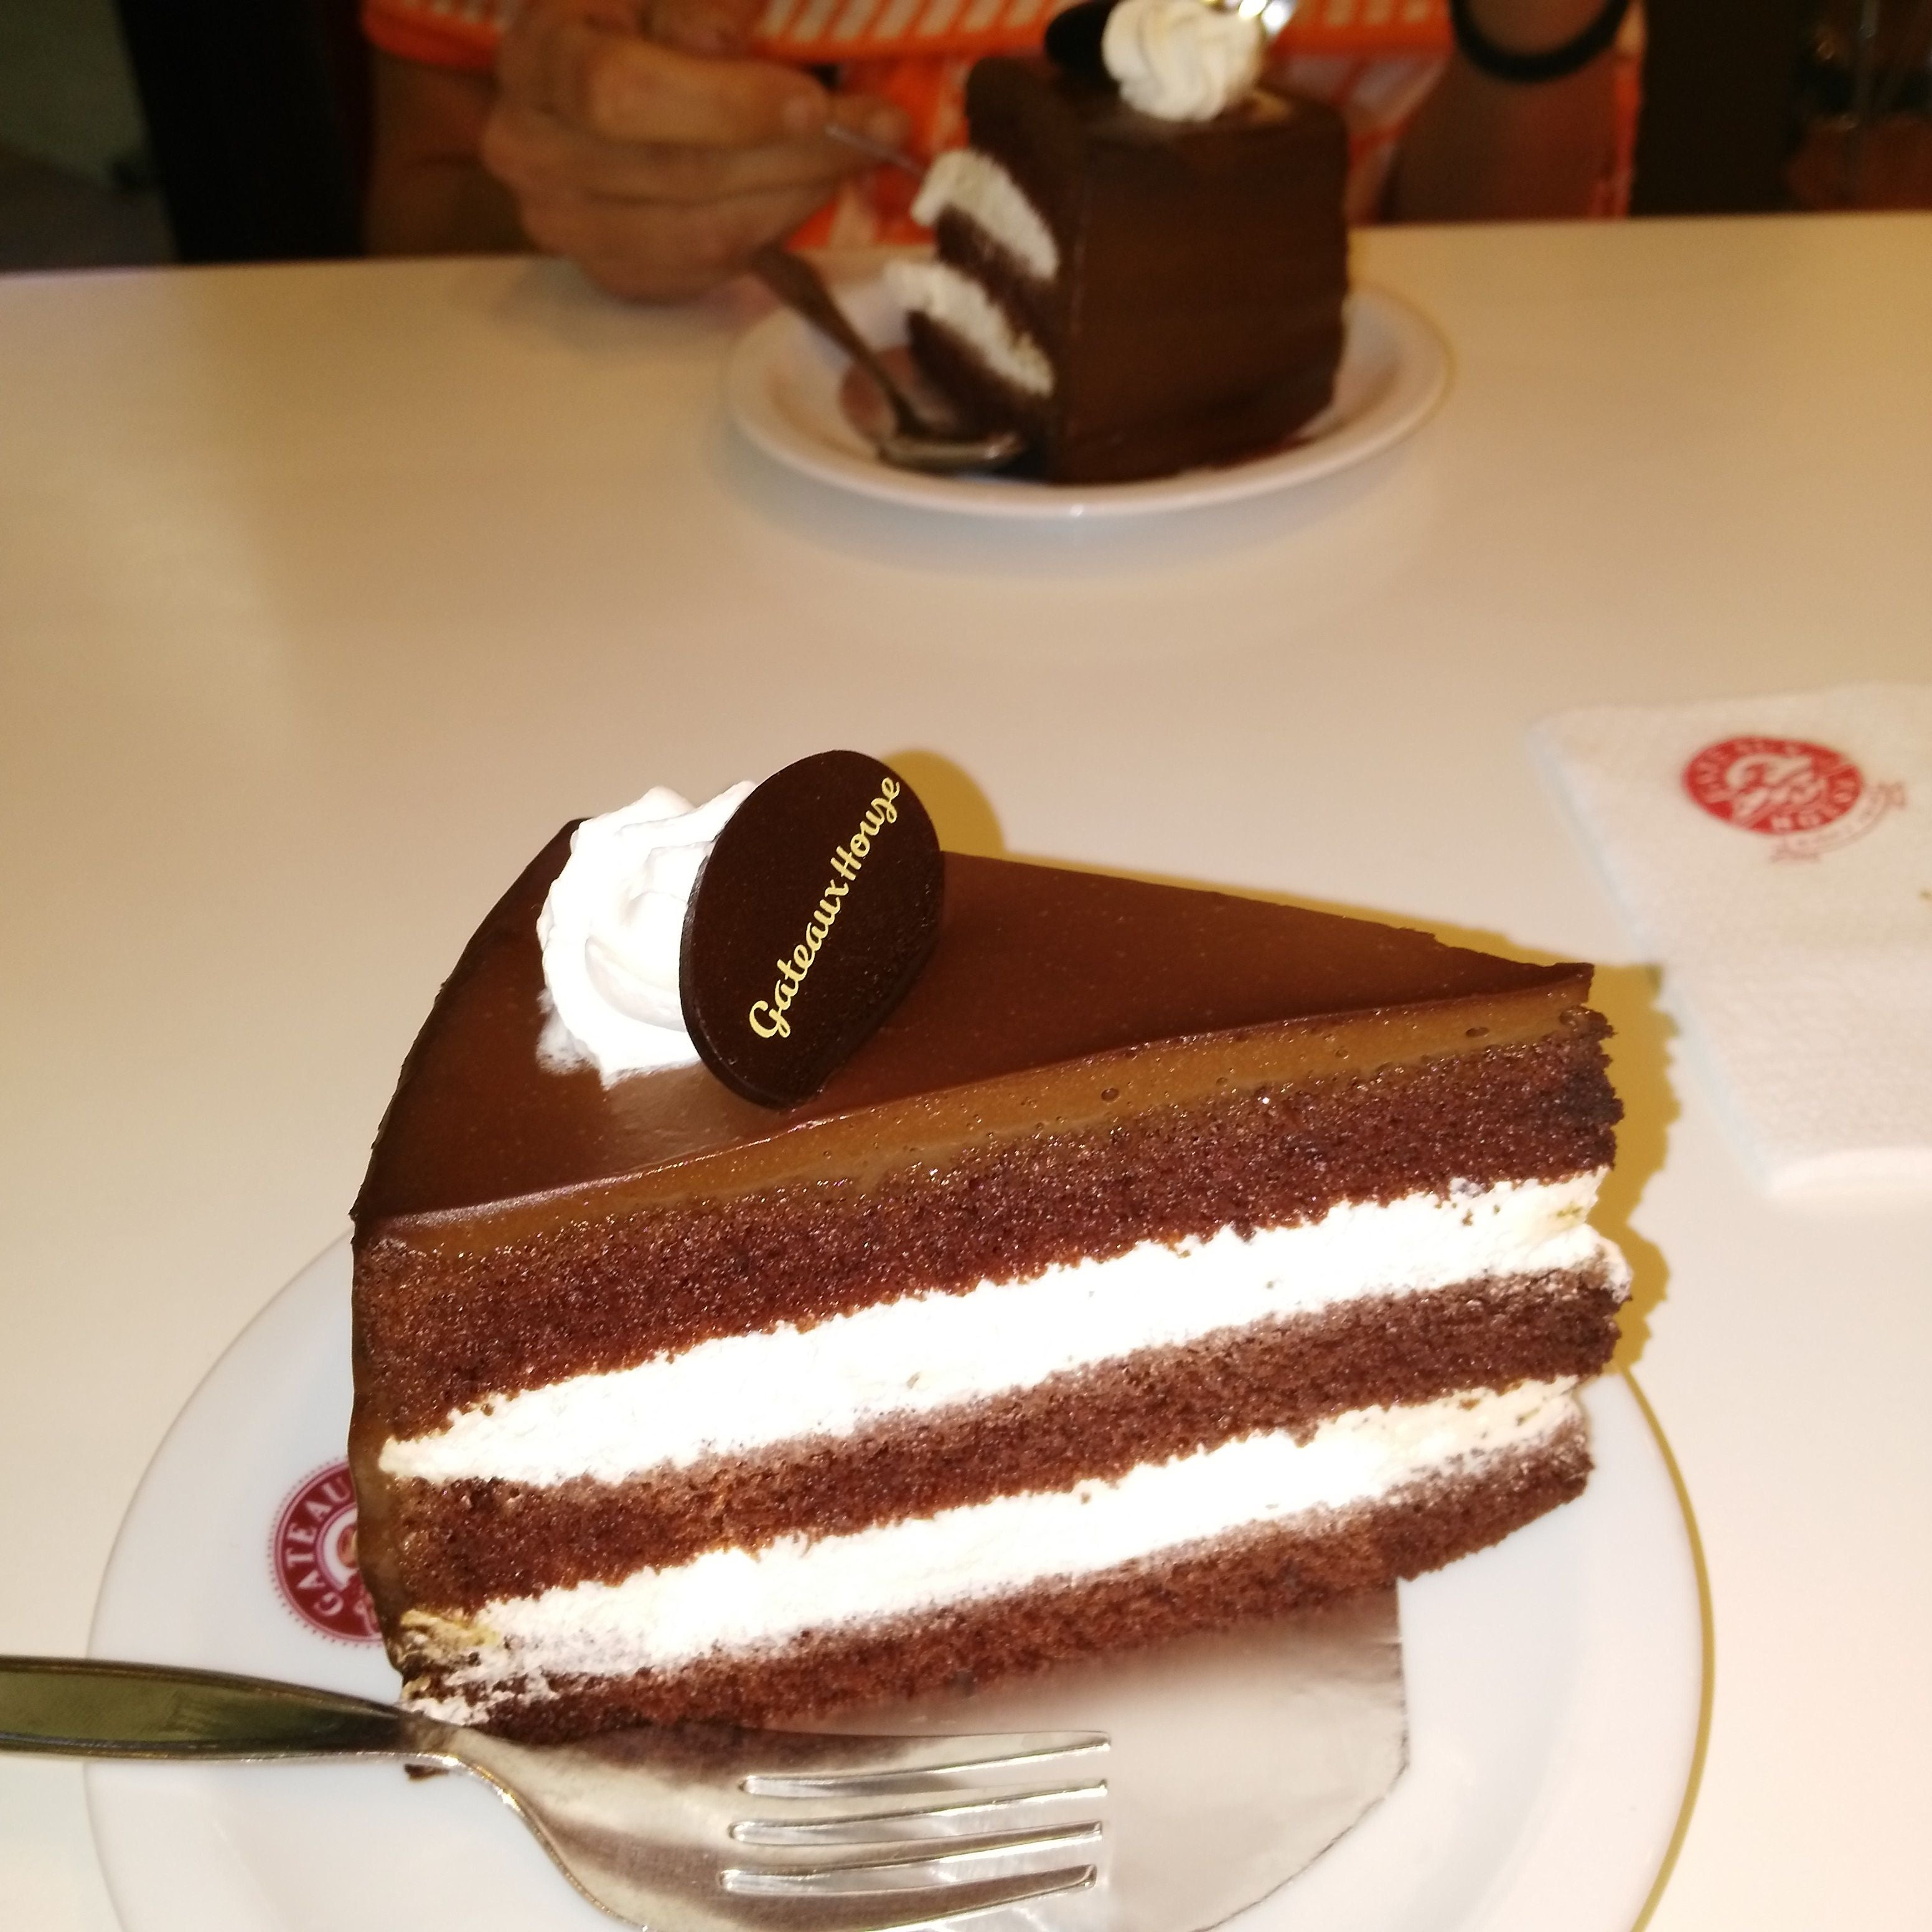 Food in Cafeteria Gateaux House